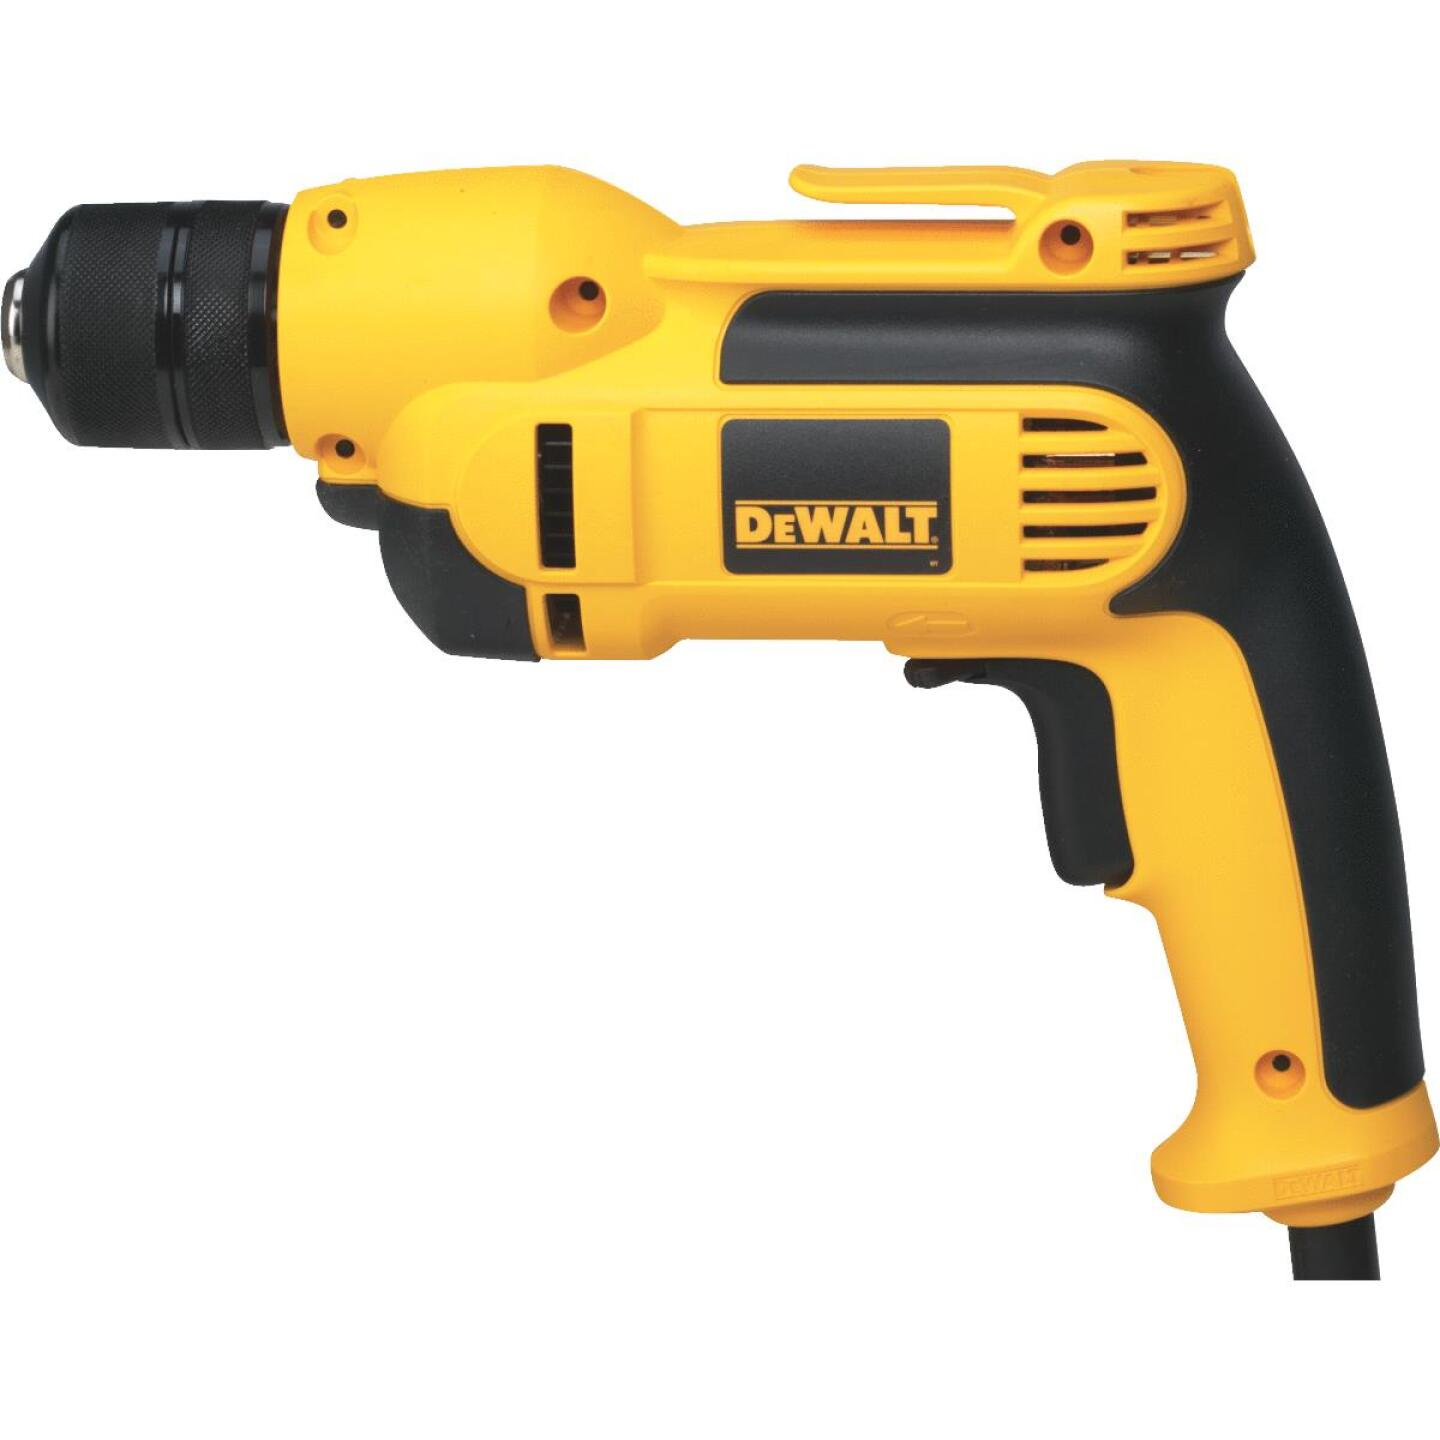 DeWalt 3/8 In. 8-Amp Keyless Electric Drill Image 4